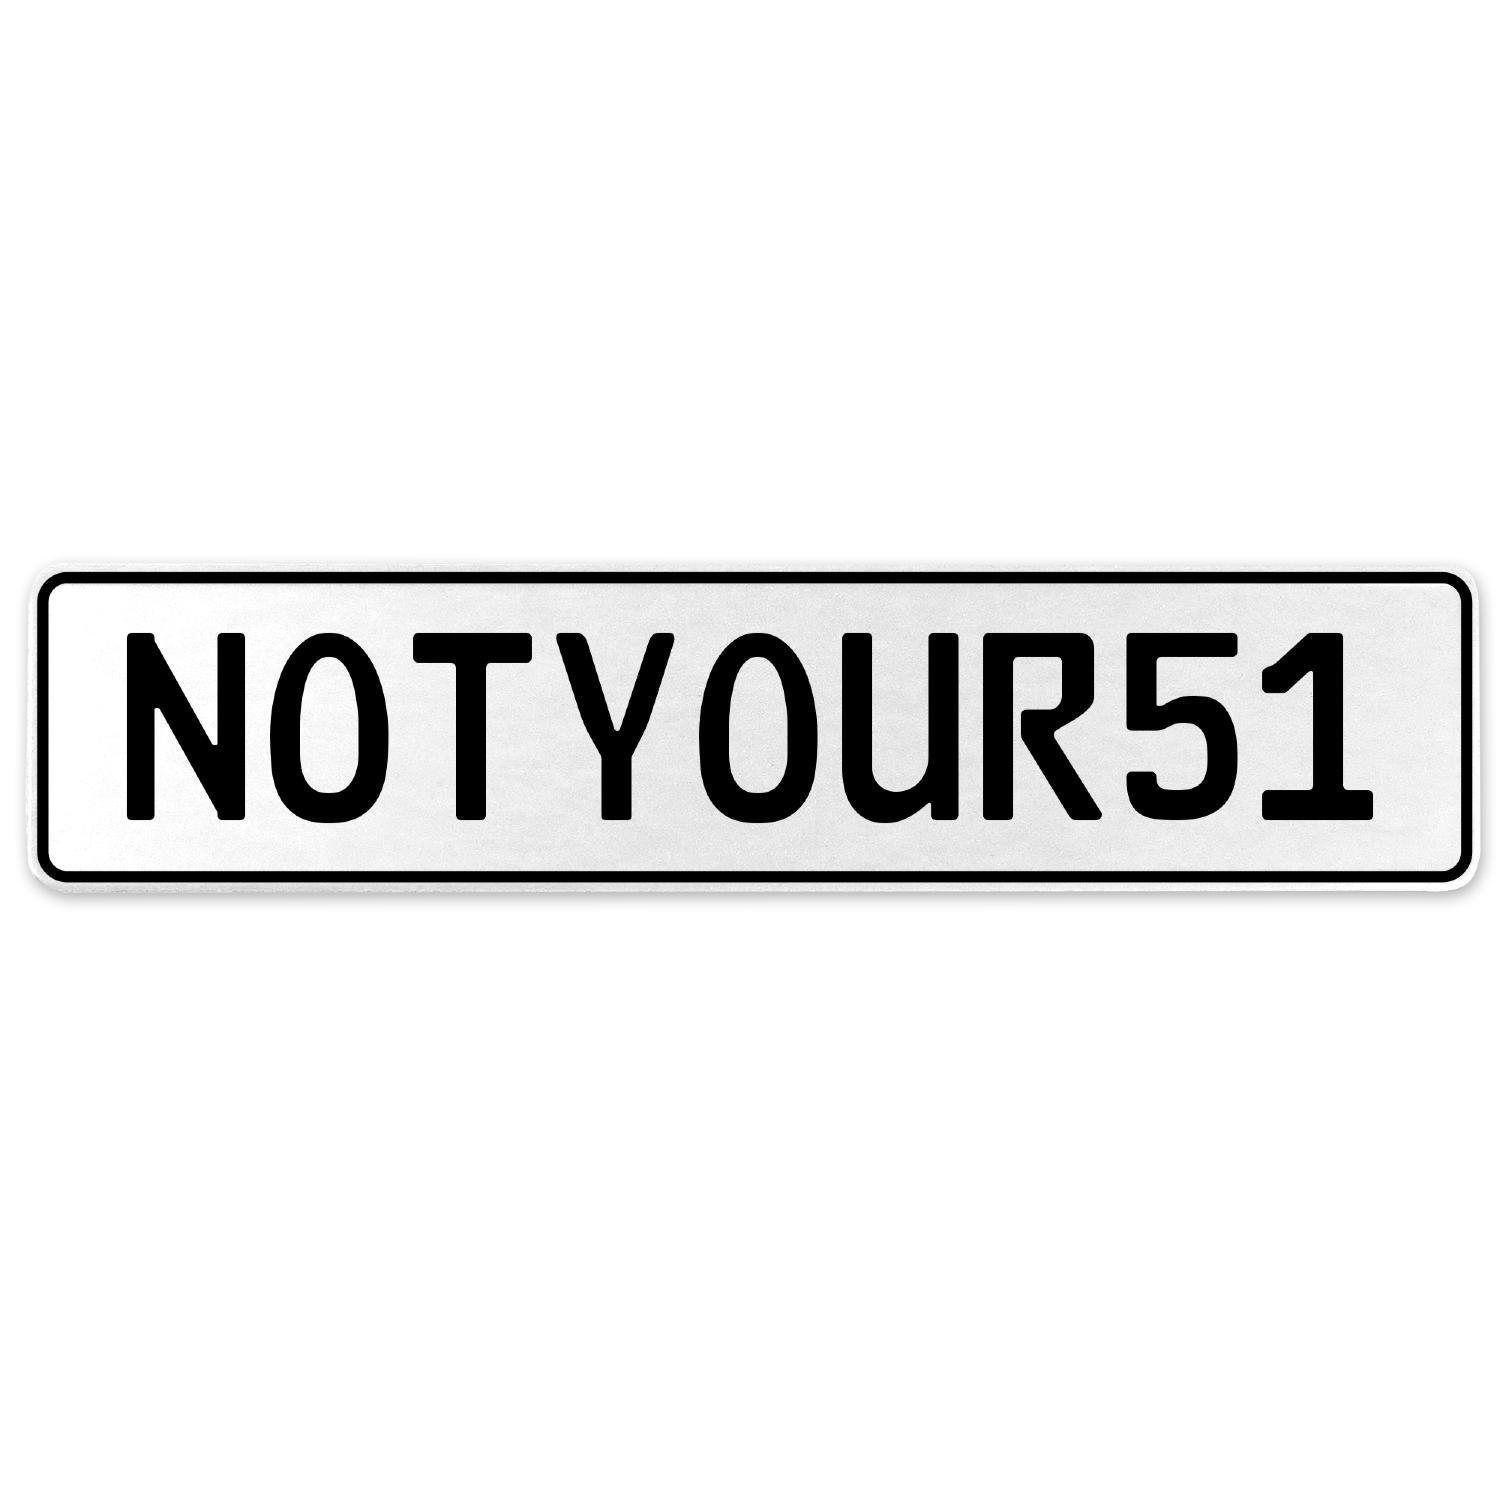 Vintage Parts 555440 NOTYOUR51 White Stamped Aluminum European License Plate